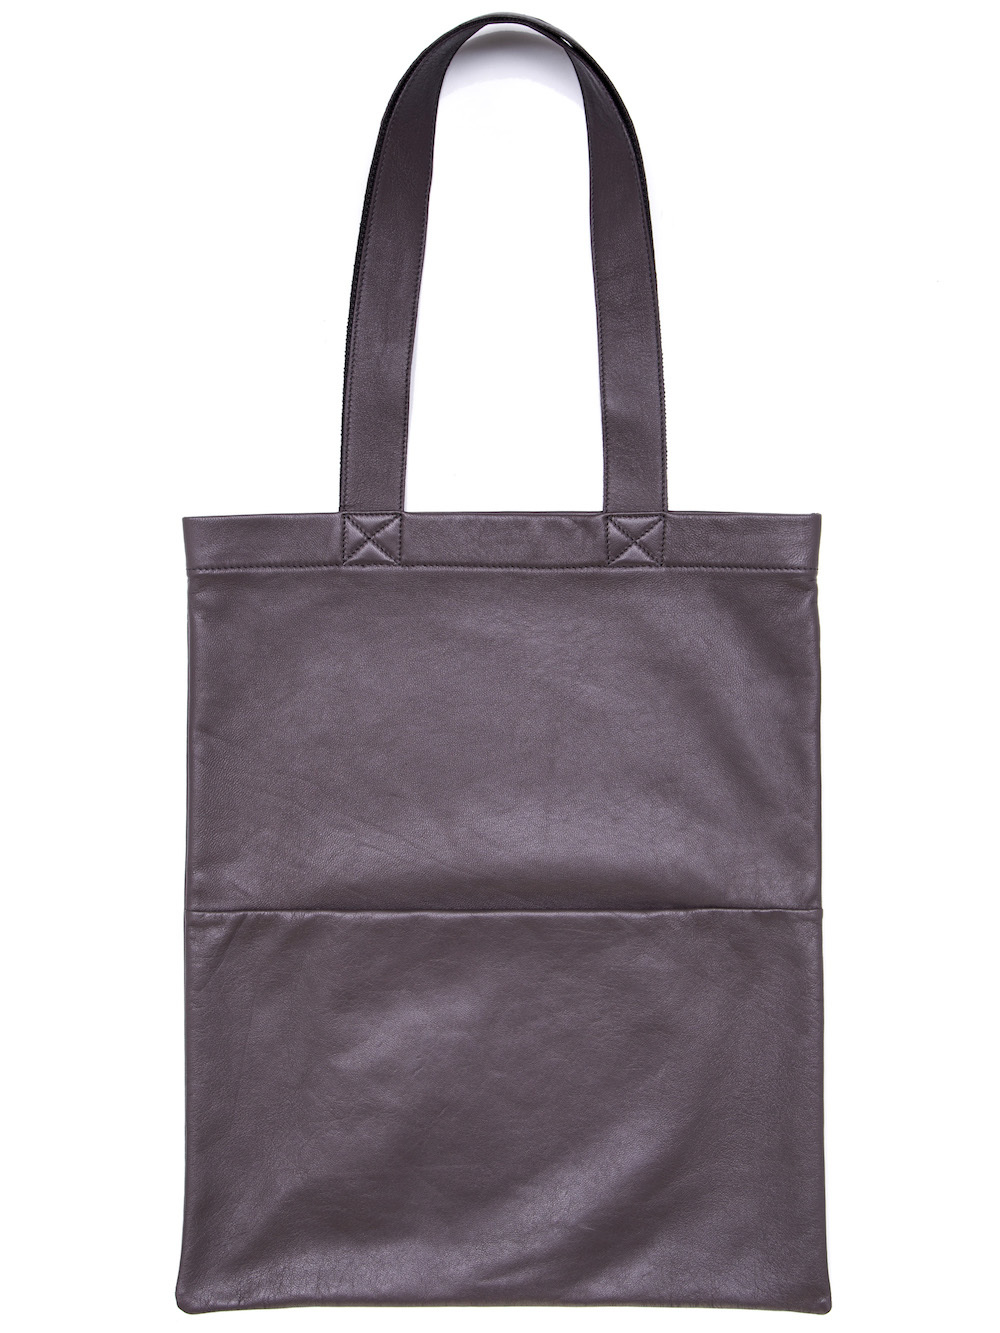 RICK OWENS SMALL SIGNATURE TOTE BAG IN DARKDUST GREY LAMB LEATHER